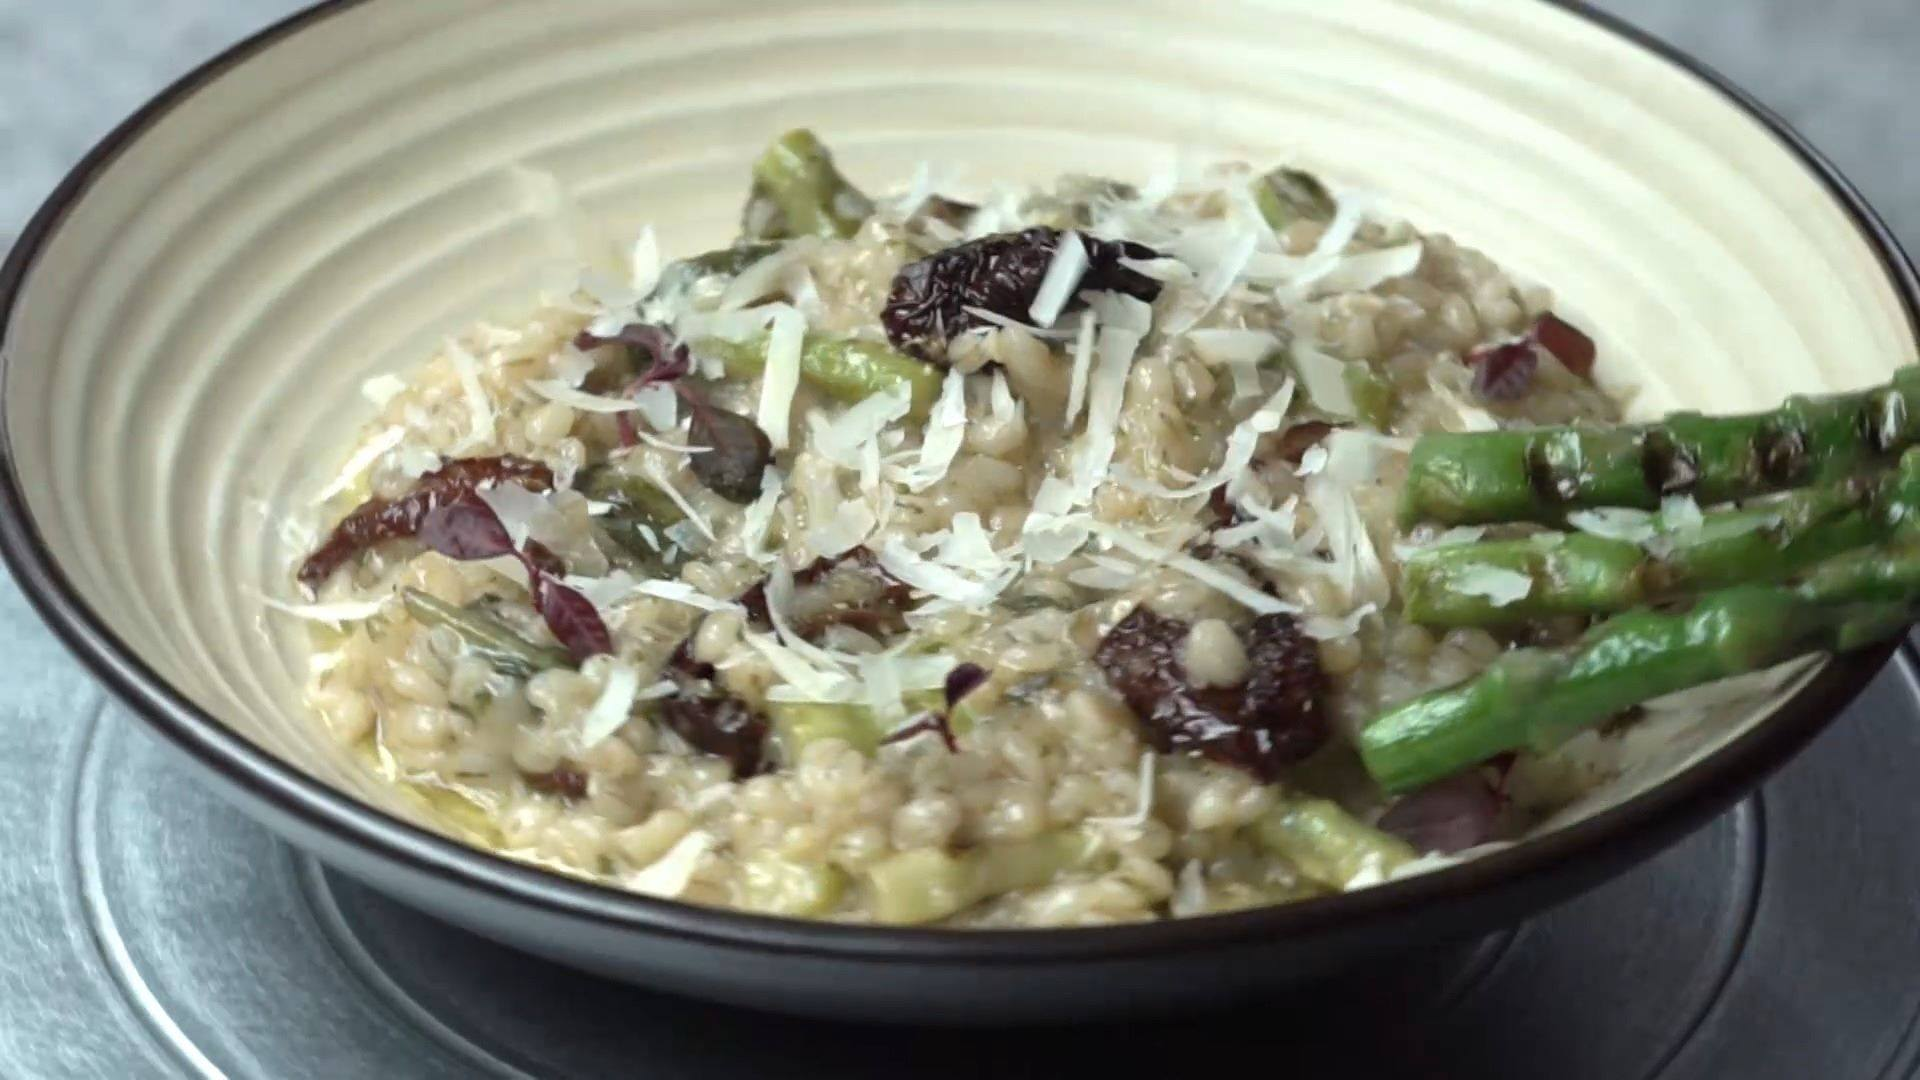 Our #RecipeOfTheWeek is an Asparagus and Sun-dried Tomato Barley Risotto.  We love cooking with #barley for its deliciously-chewy texture, which lends a nutty twist on a traditional risotto. Combined with the vibrancy of fresh asparagus and the sweet-and-tart profile of sun-dried tomatoes, it makes for an inherently nourishing dish packed with flavor and comfort!   Visit a Foodhall near you to pick up all the ingredients you need to rustle it up at home, or ring us on 8095031111 to have the essentials delivered to your doorstep!  #FoodhallIndia #ComfortFood #RainyDayRecipes #BarleyRisotto #BeautifulCuisines #Monsoons #Barley #AsparagusRisotto #RecipeShare #RecipeOfTheDay #VegetarianRecipe